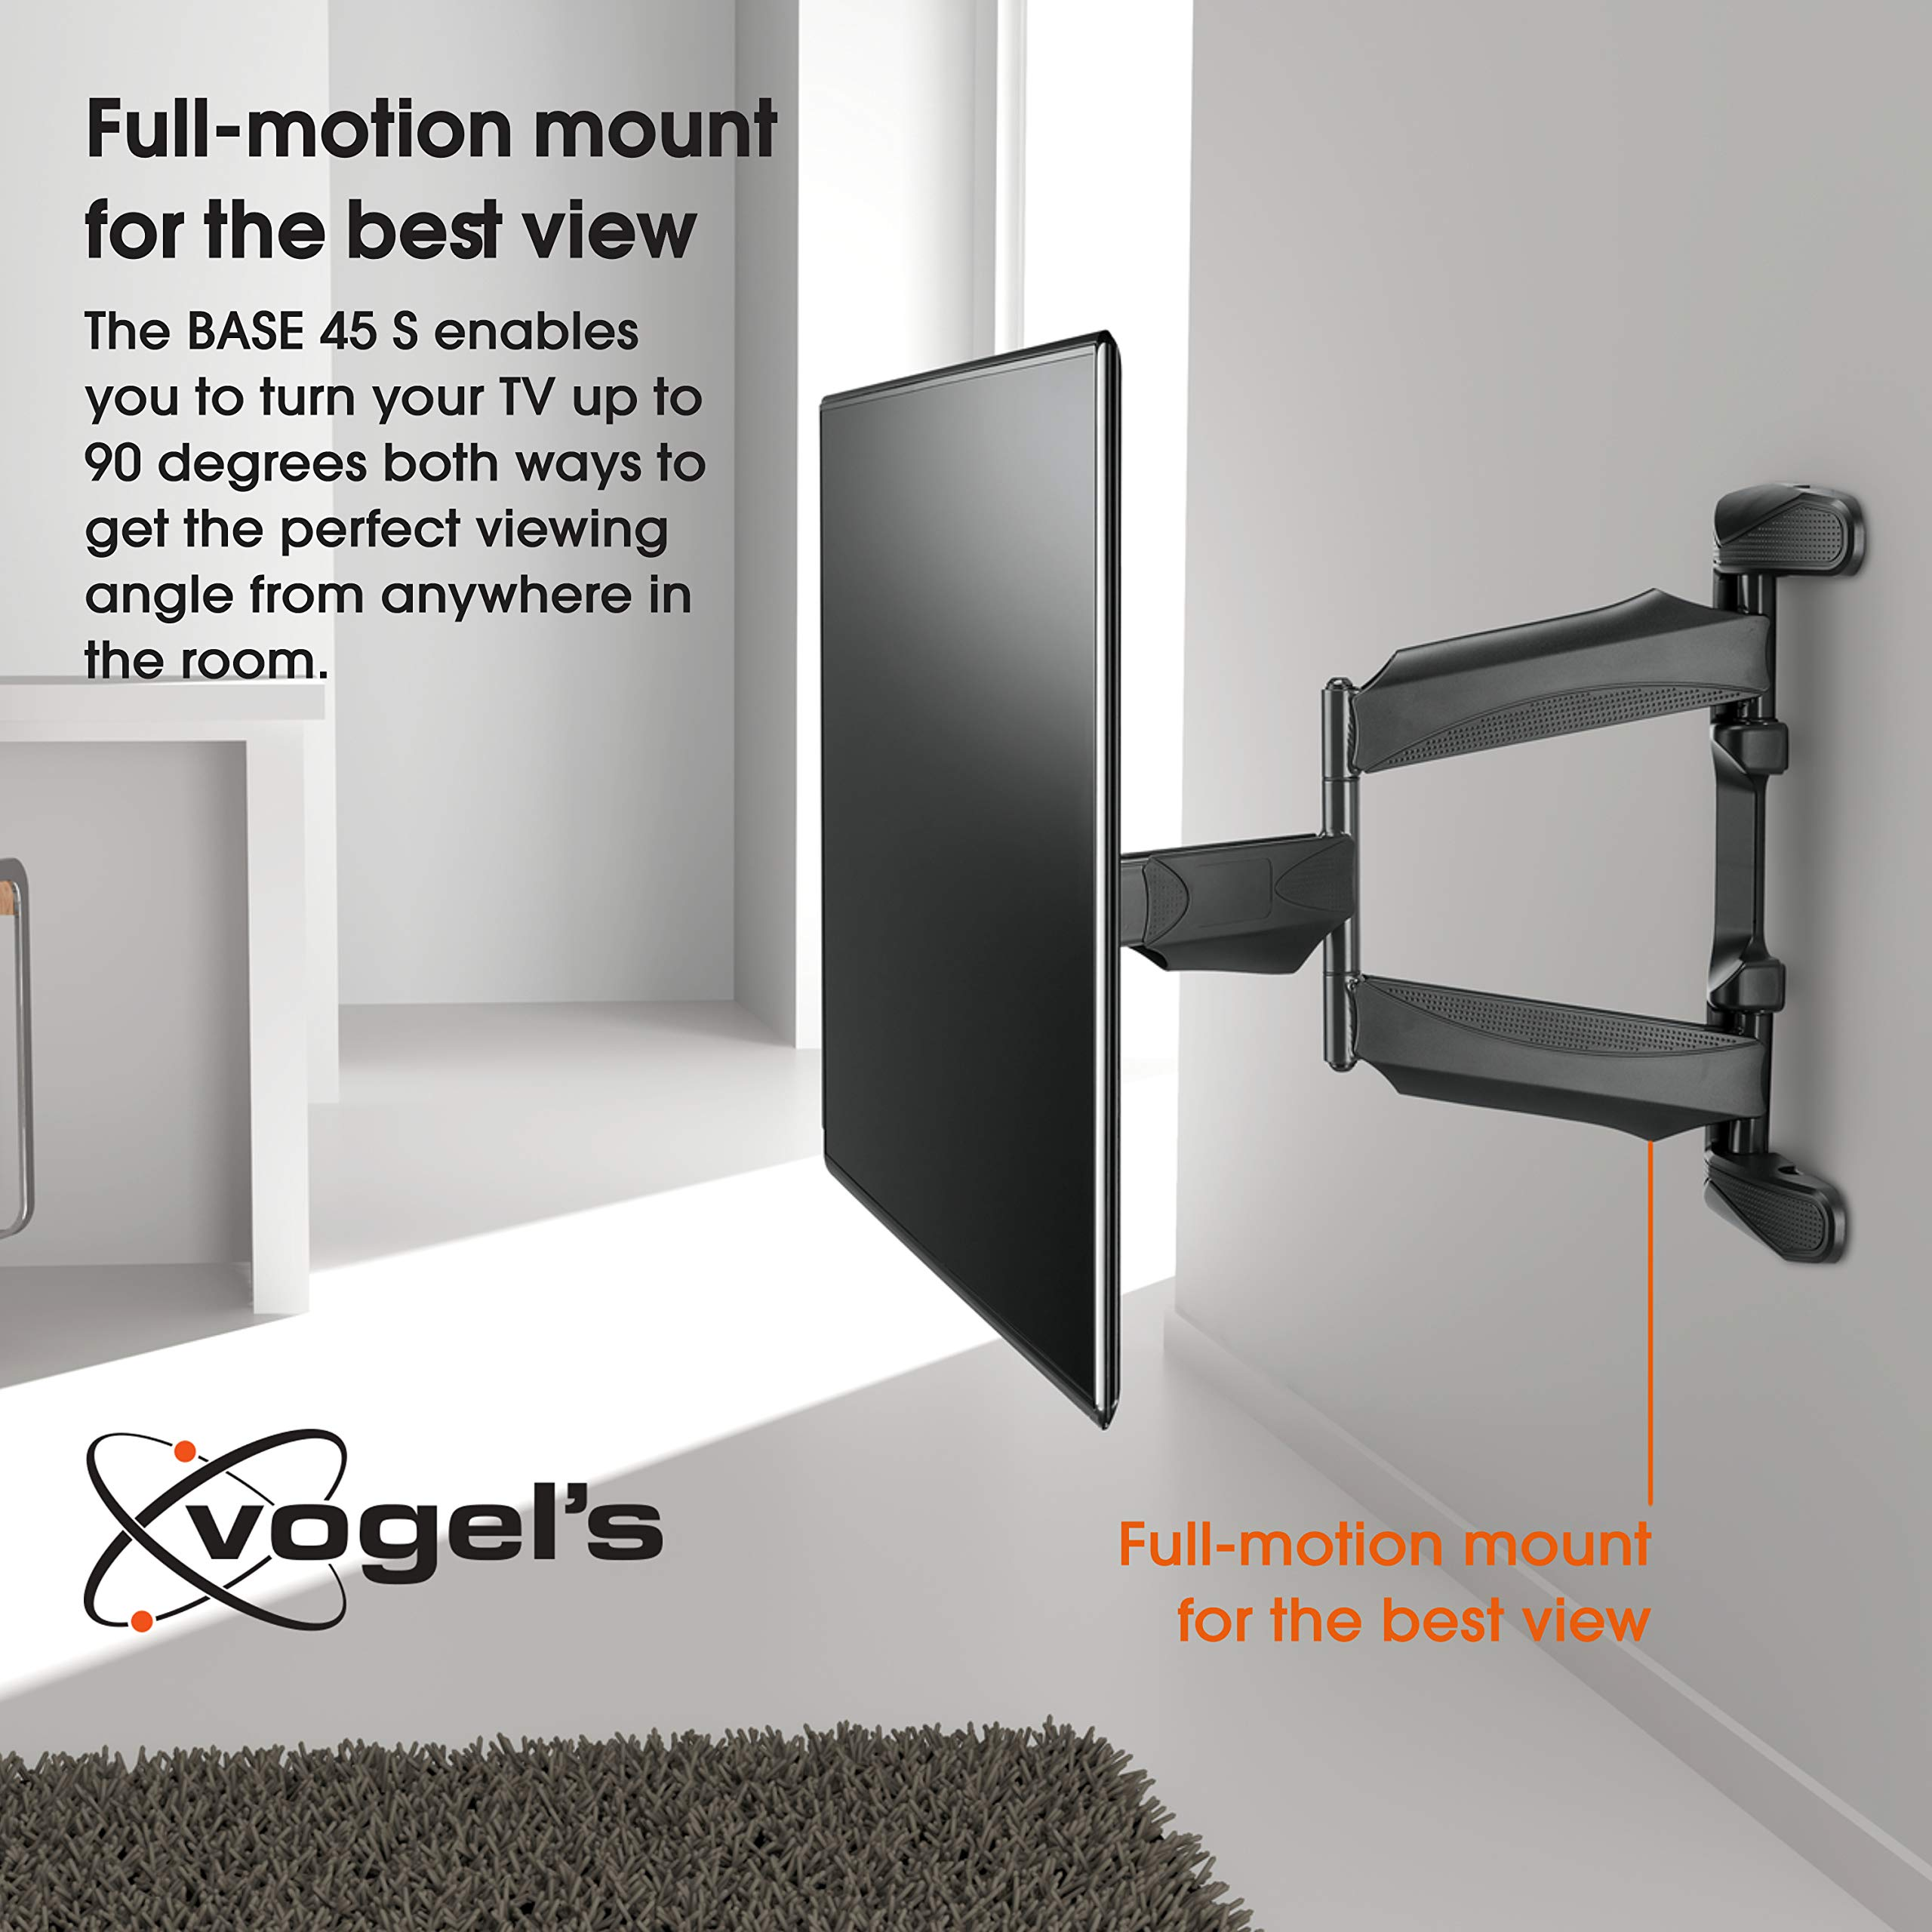 Vogels BASE 45 S, Soporte de pared para TV 19: Amazon.es: Electrónica